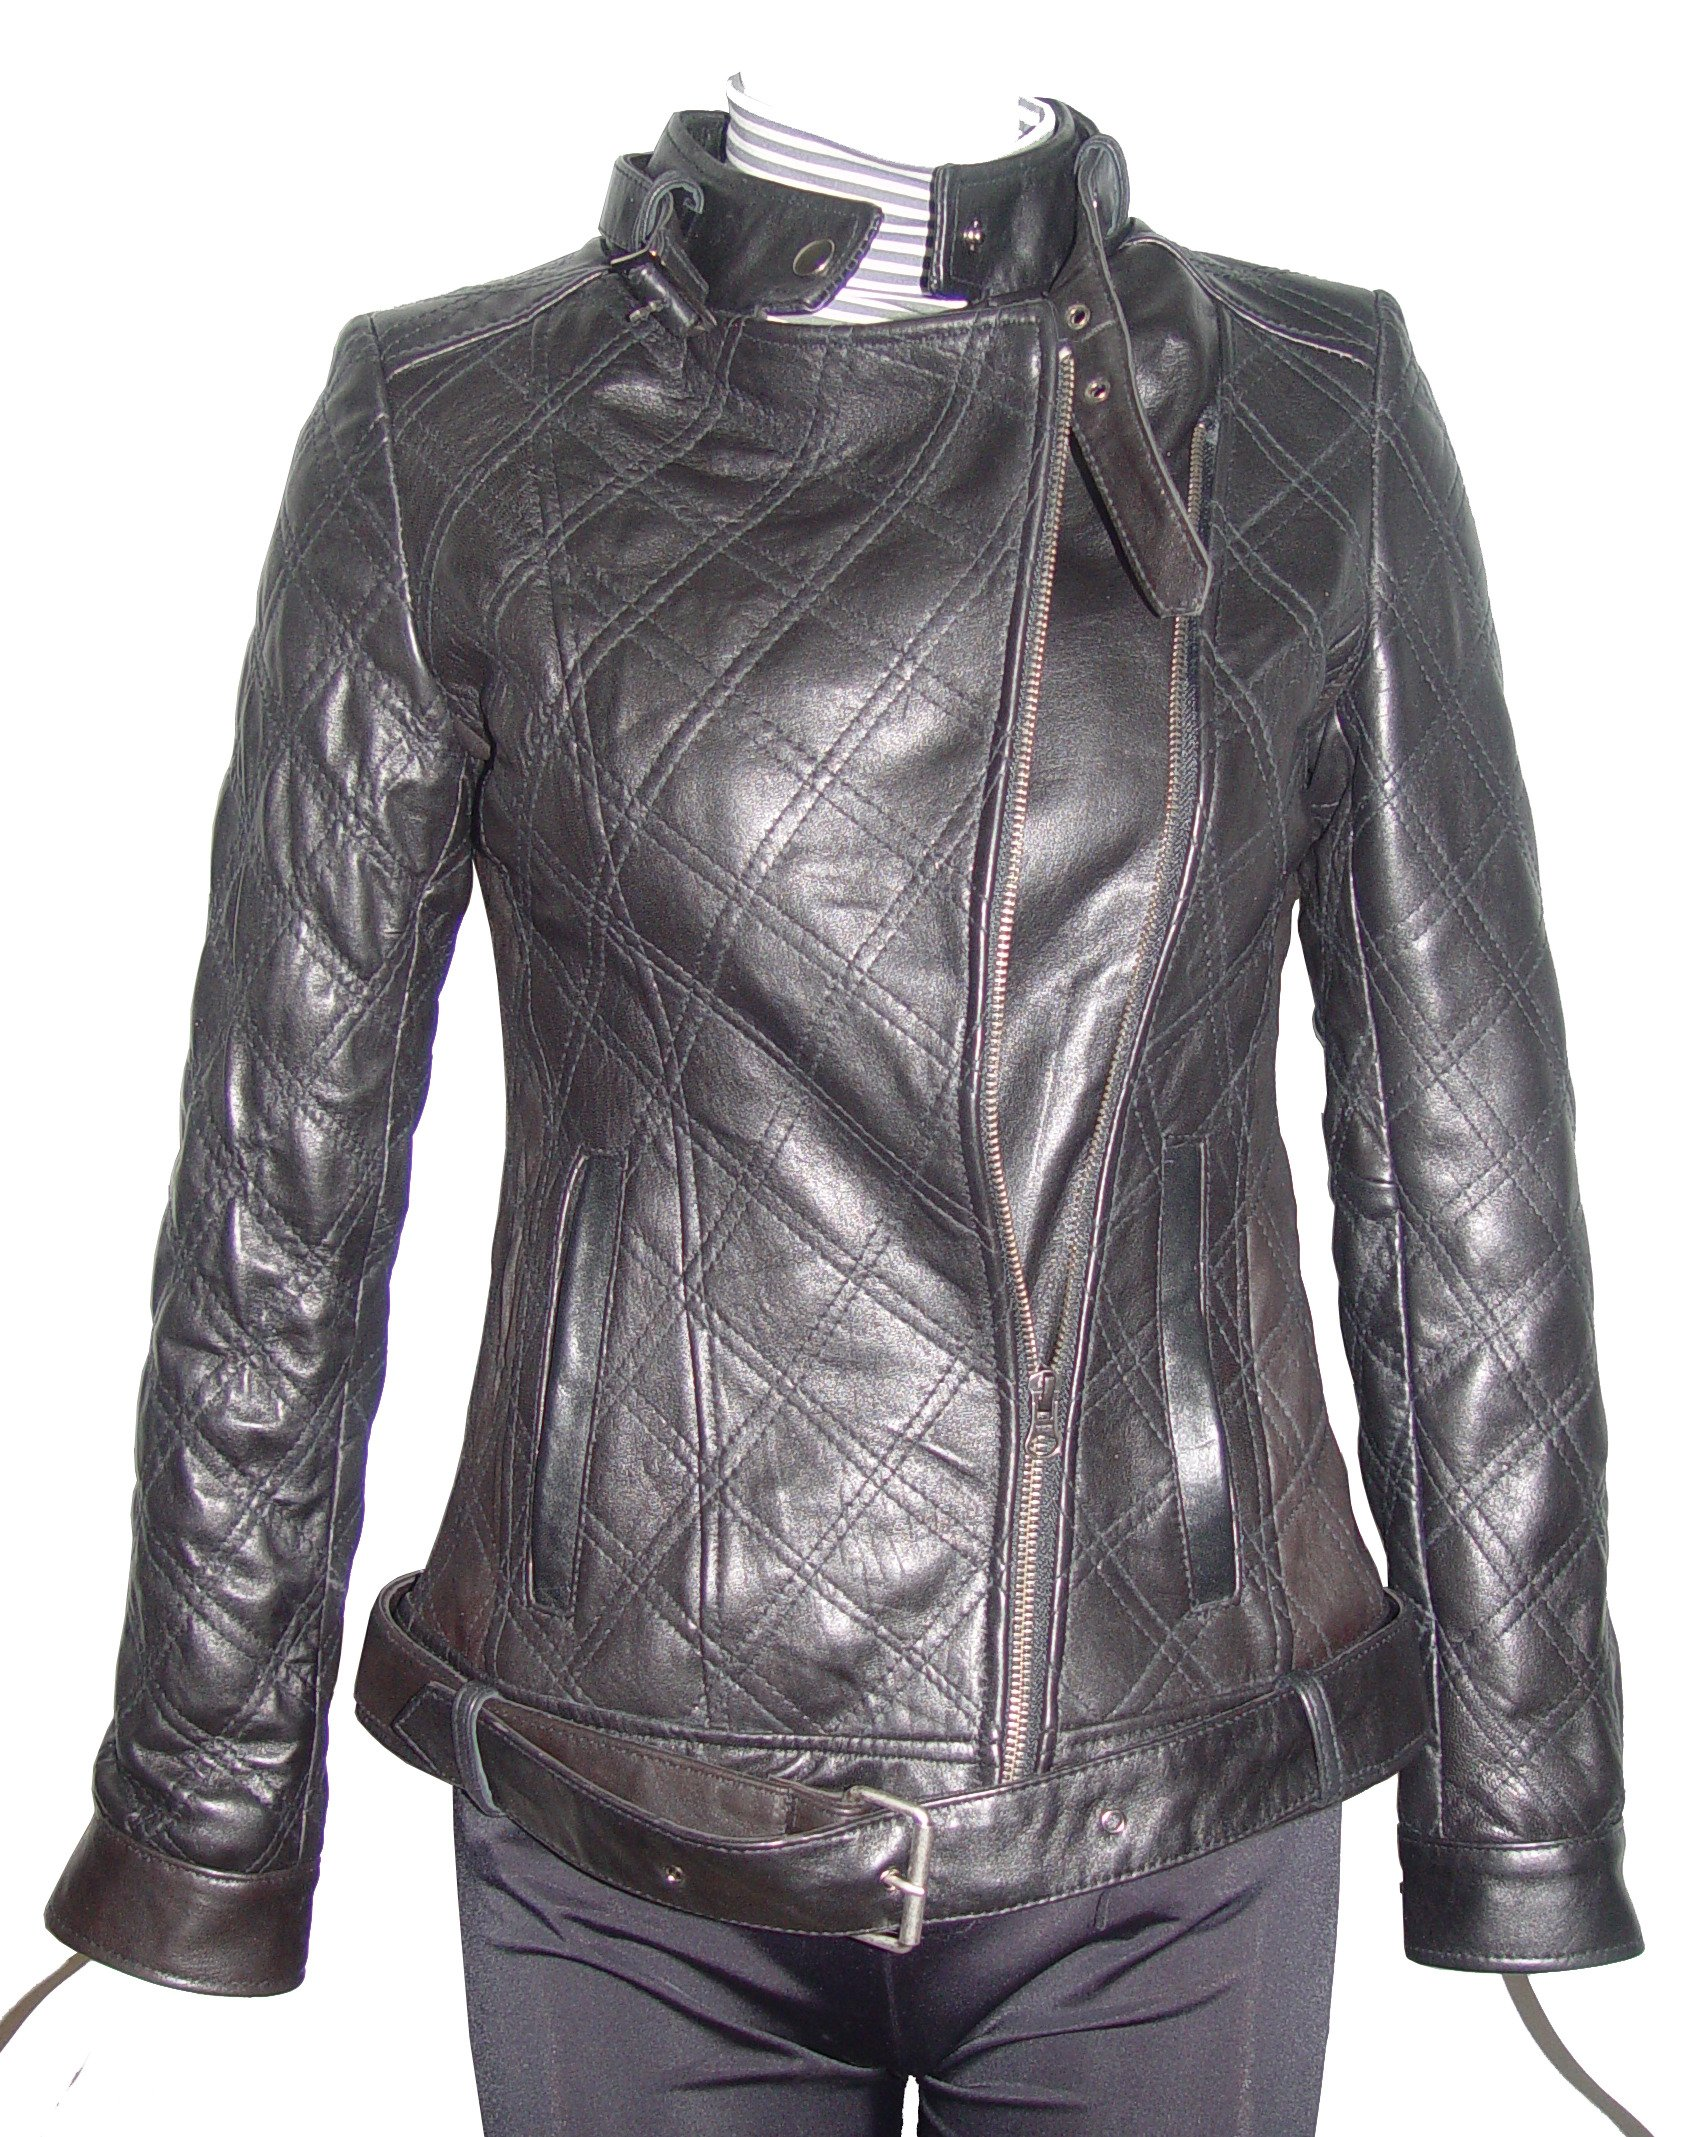 Nettailor Women PETITE & ALL SIZE Fashion 4123 Leather Motorcycle Jacket by Paccilo (Image #5)